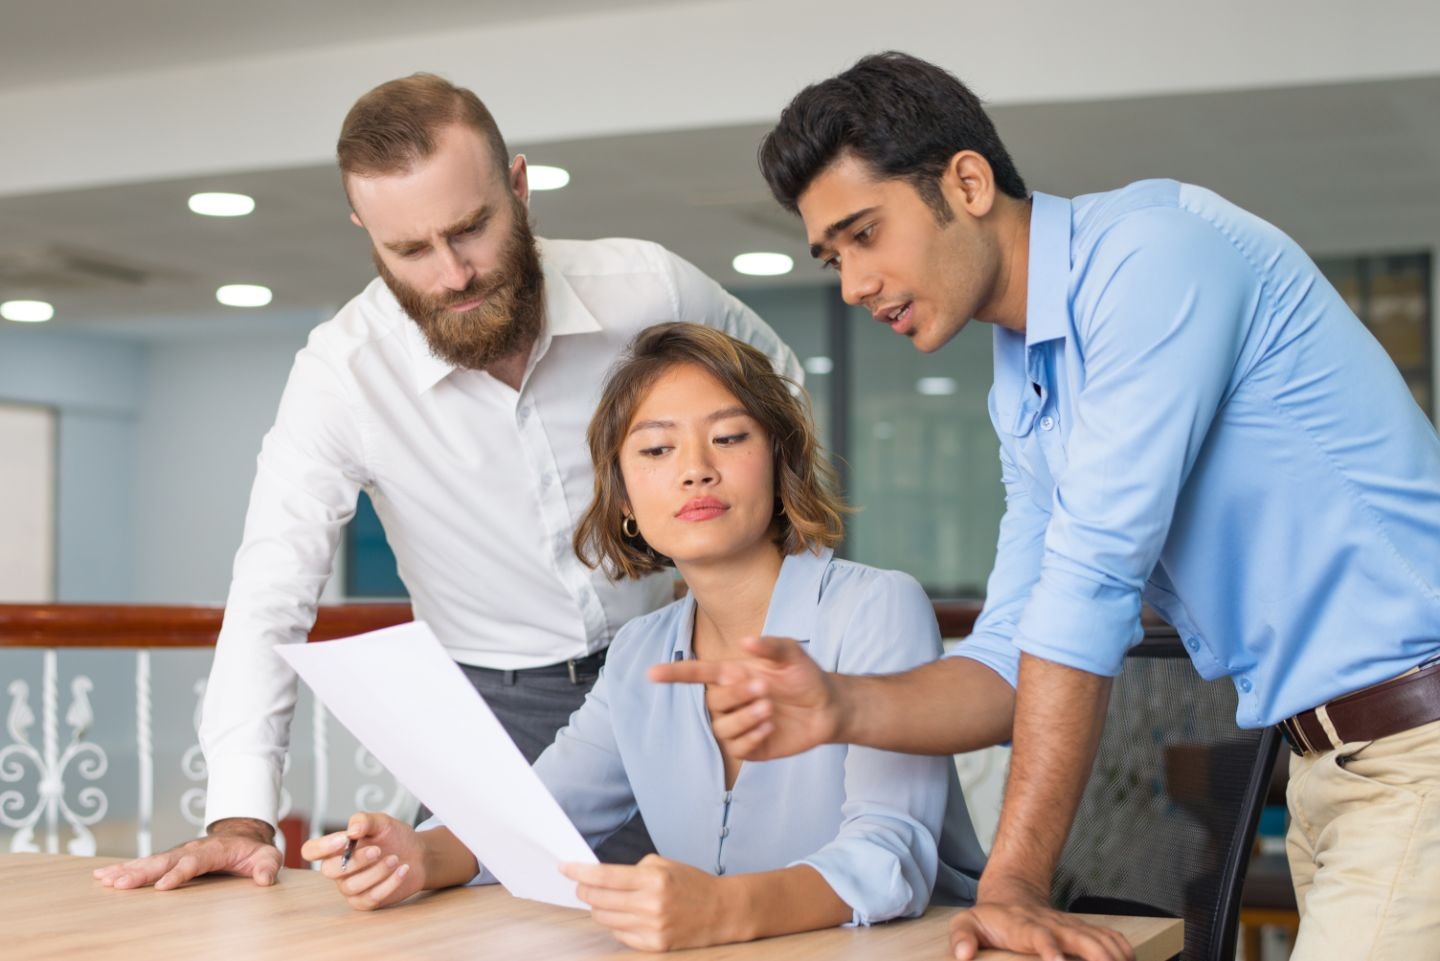 People looking over a document together